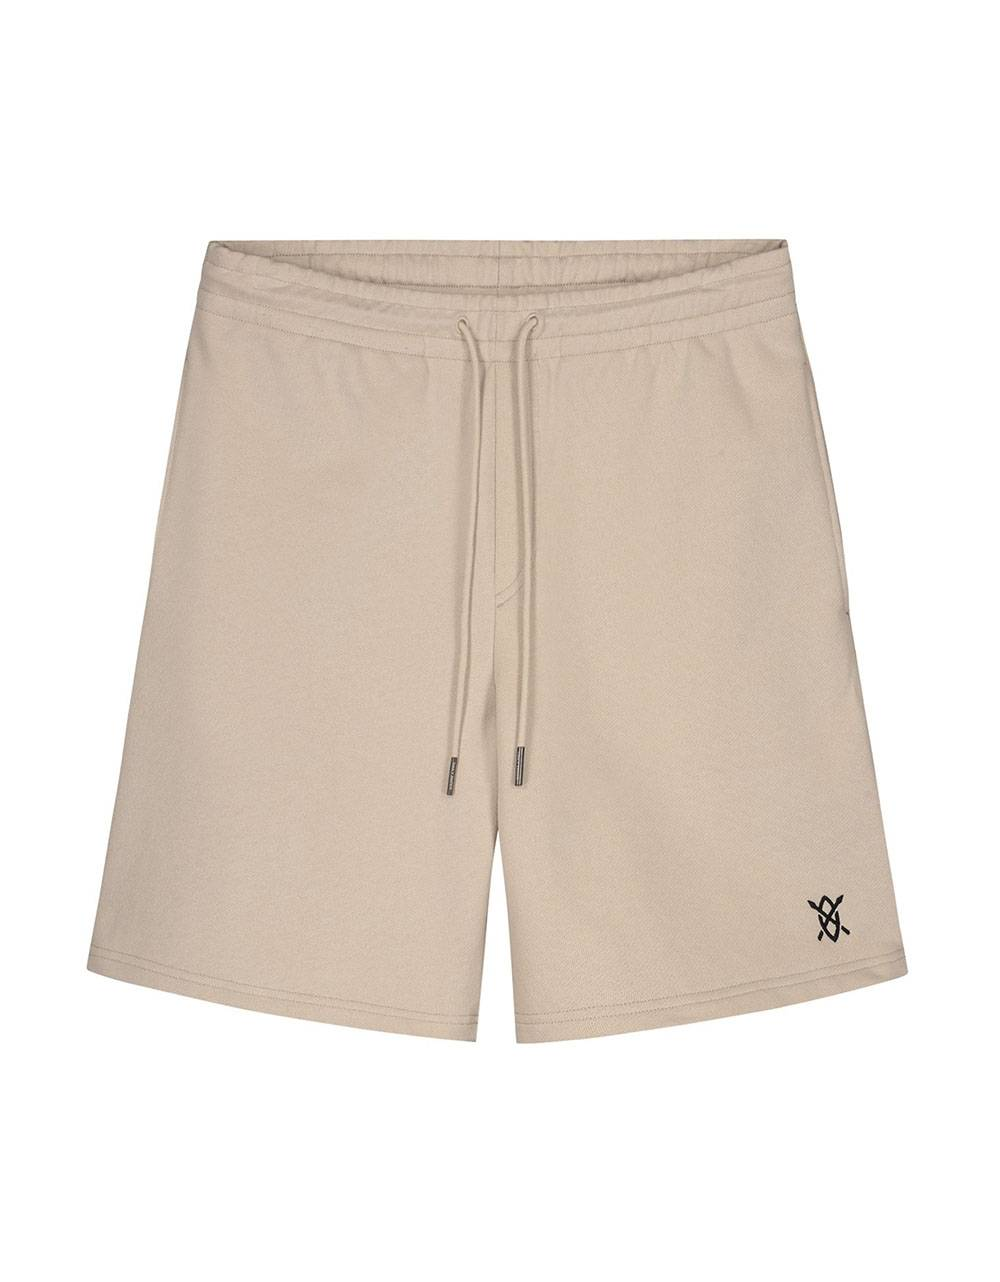 Daily Paper eshort shorts - beige DAILY PAPER Shorts 75,00€